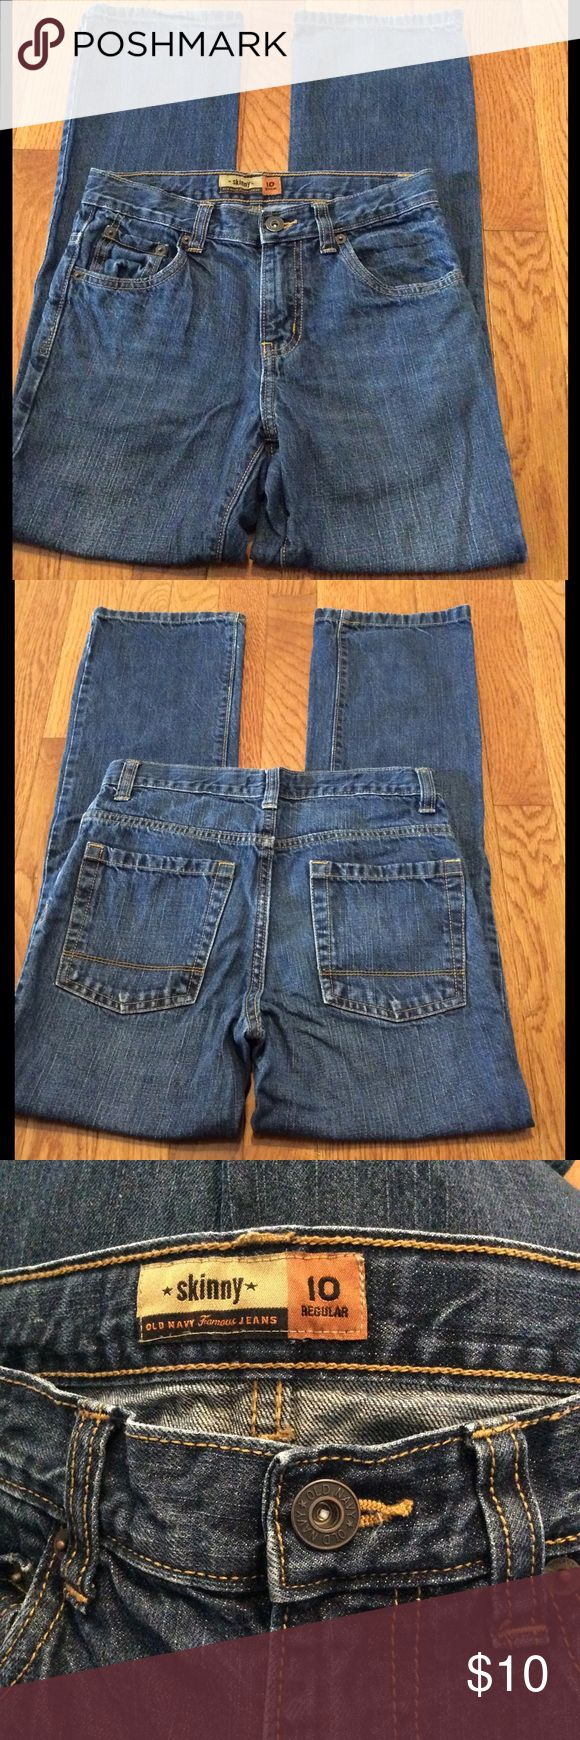 Boy's Old Navy Skinny Jeans size 10R In good condition Old Navy Bottoms Jeans